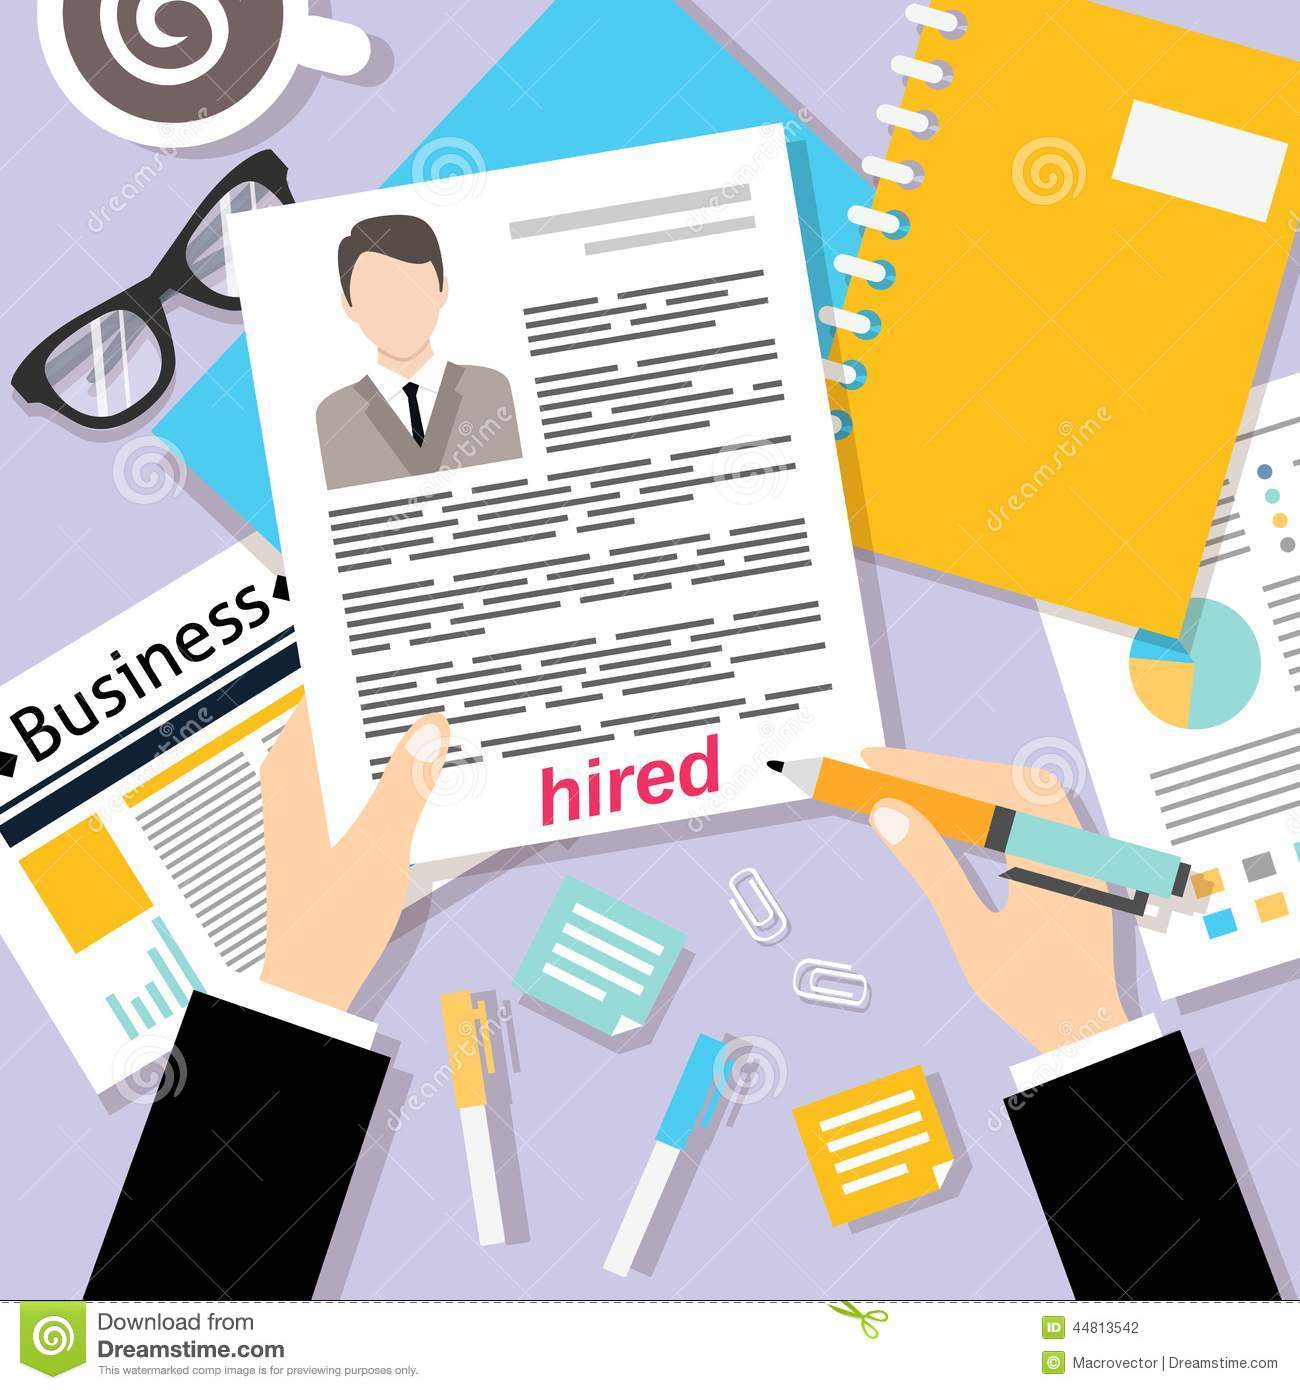 employee interview process and background checks essay Why do companies check references after the interview process and not  background checks,  the candidate wants to use them a way to reality-check the job fit as .